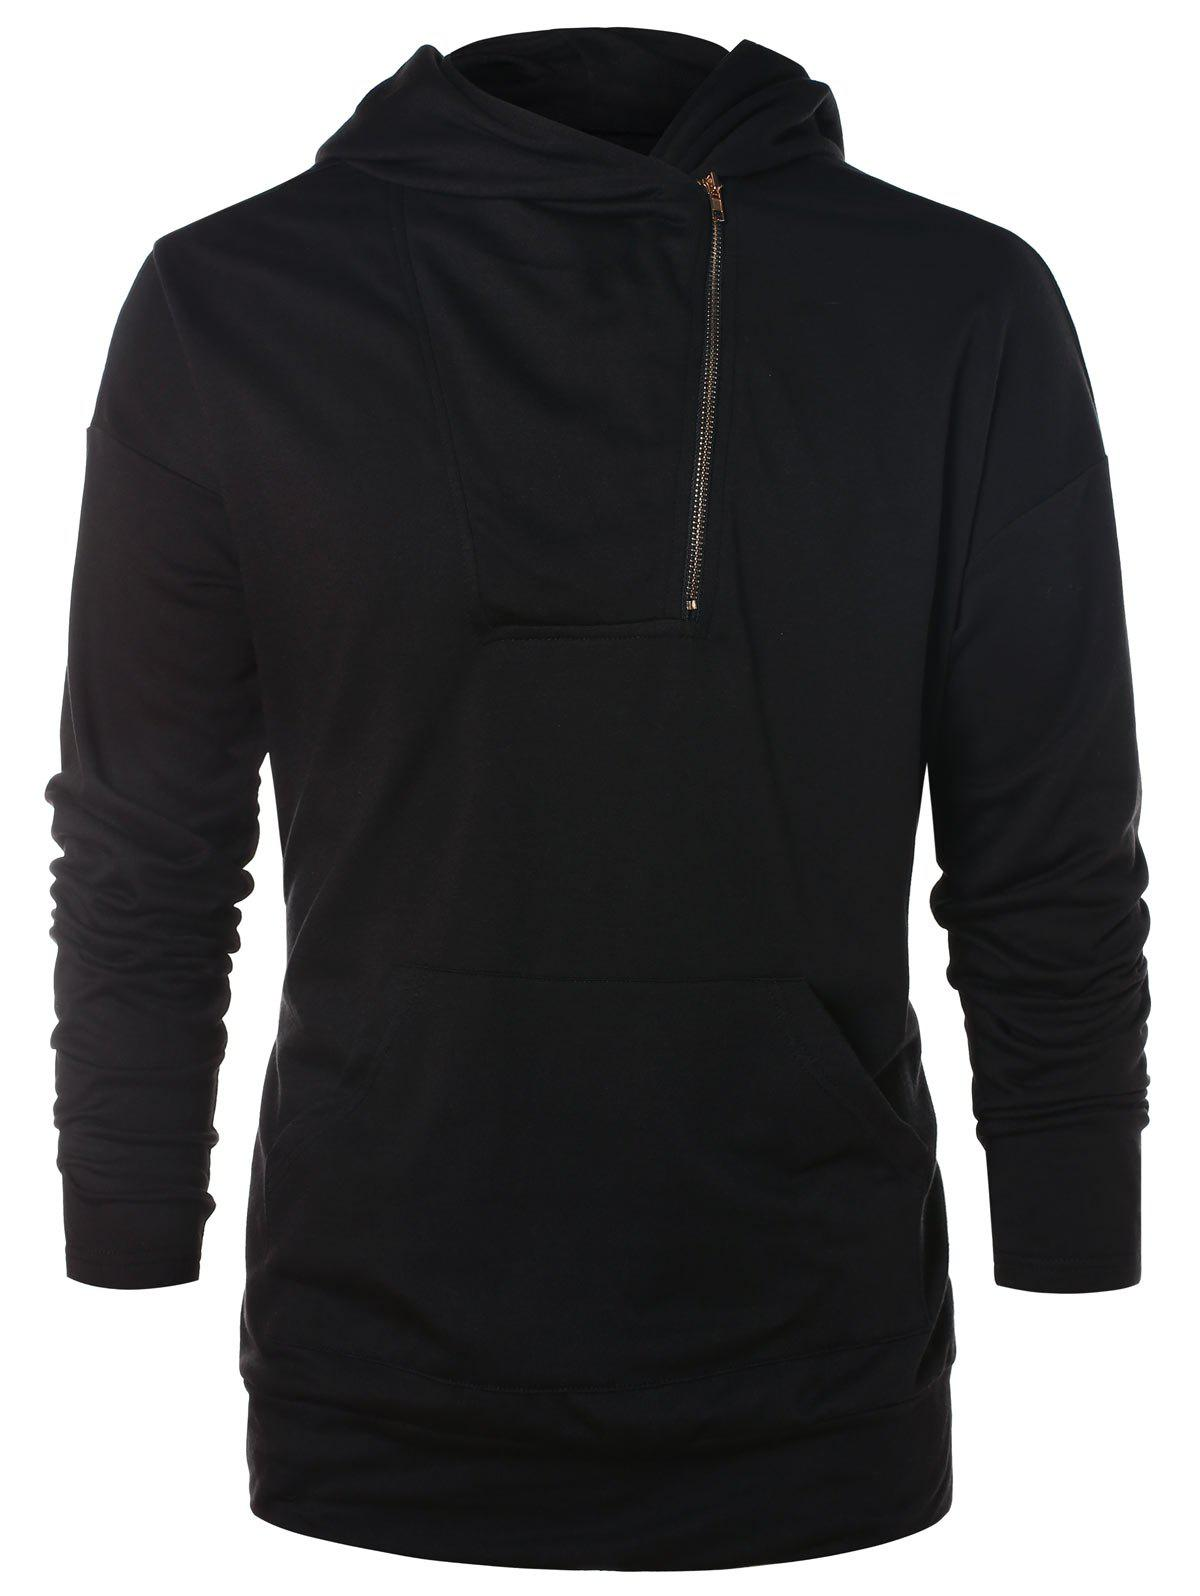 Sweat à capuche asymétrique demi-zip uni